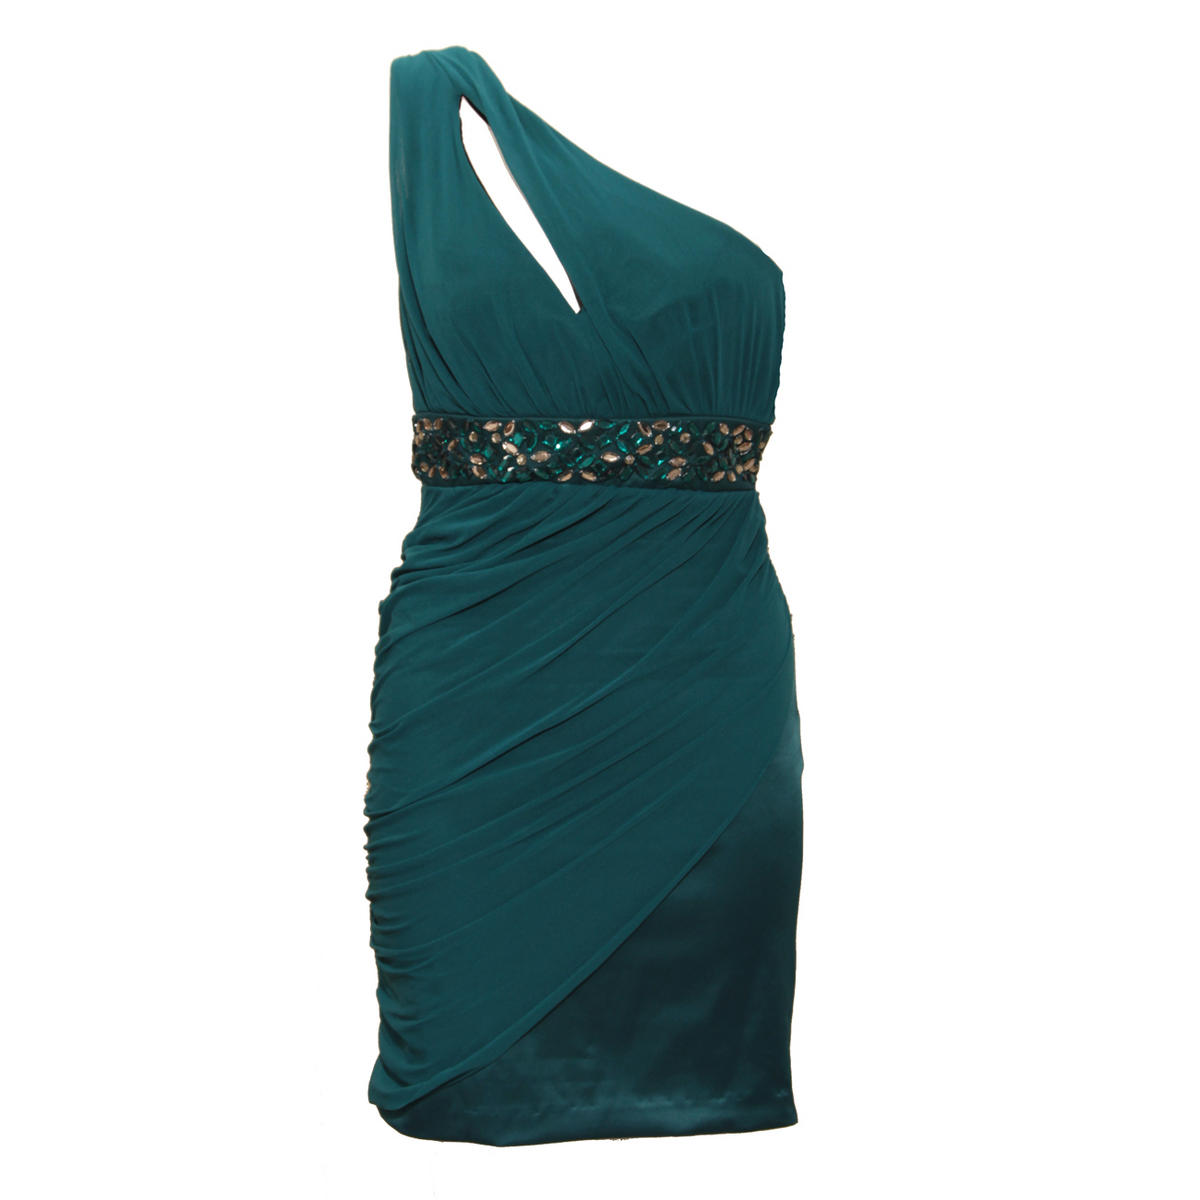 Teal Assymetrical Embellished Dress Preview